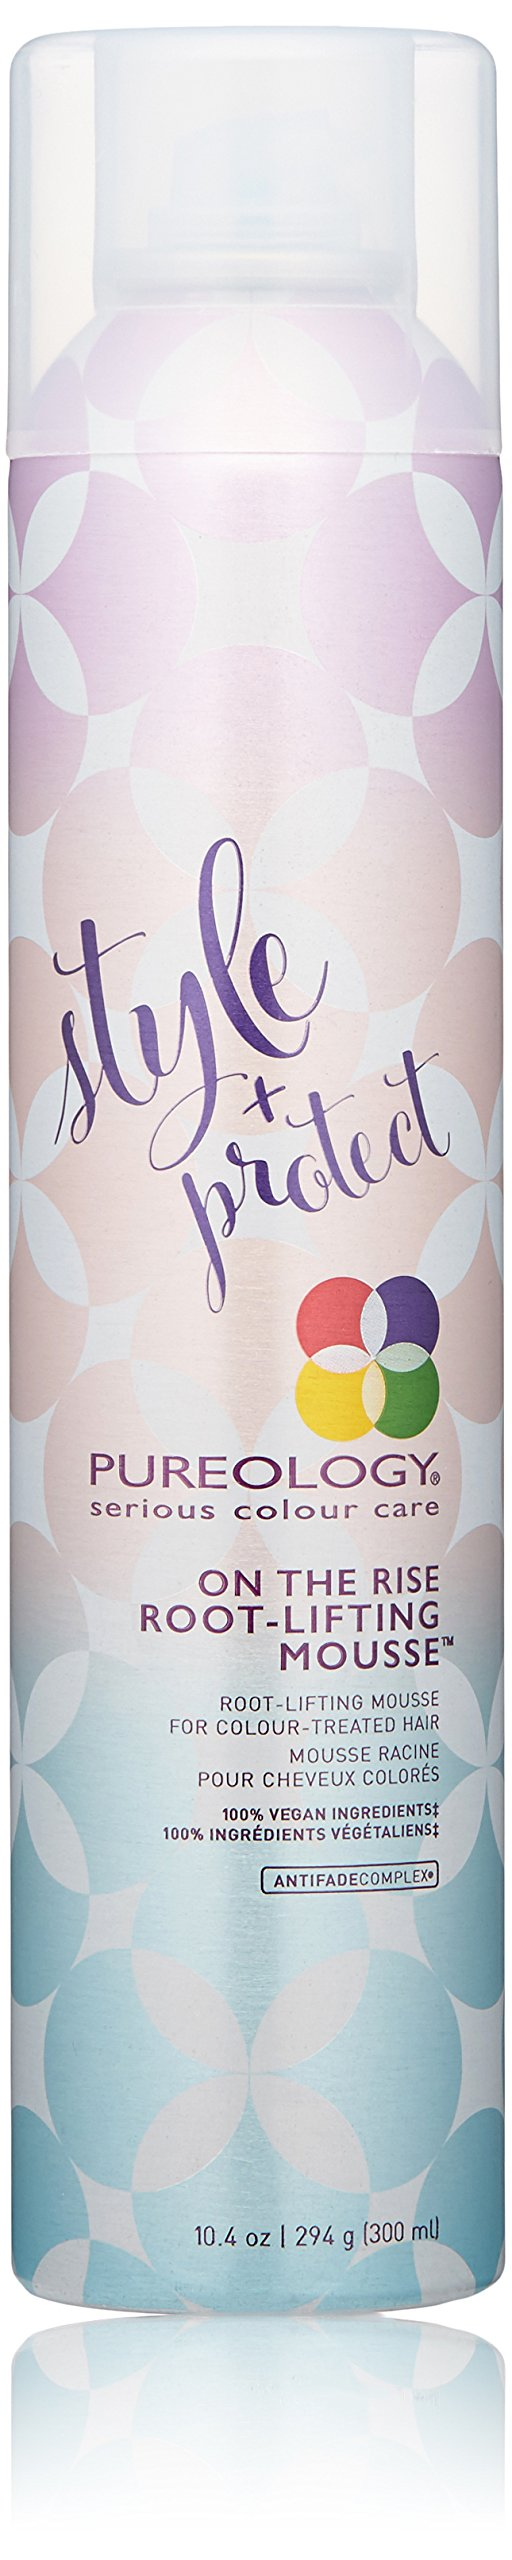 Pureology Style Protect Root Lifting Mousse